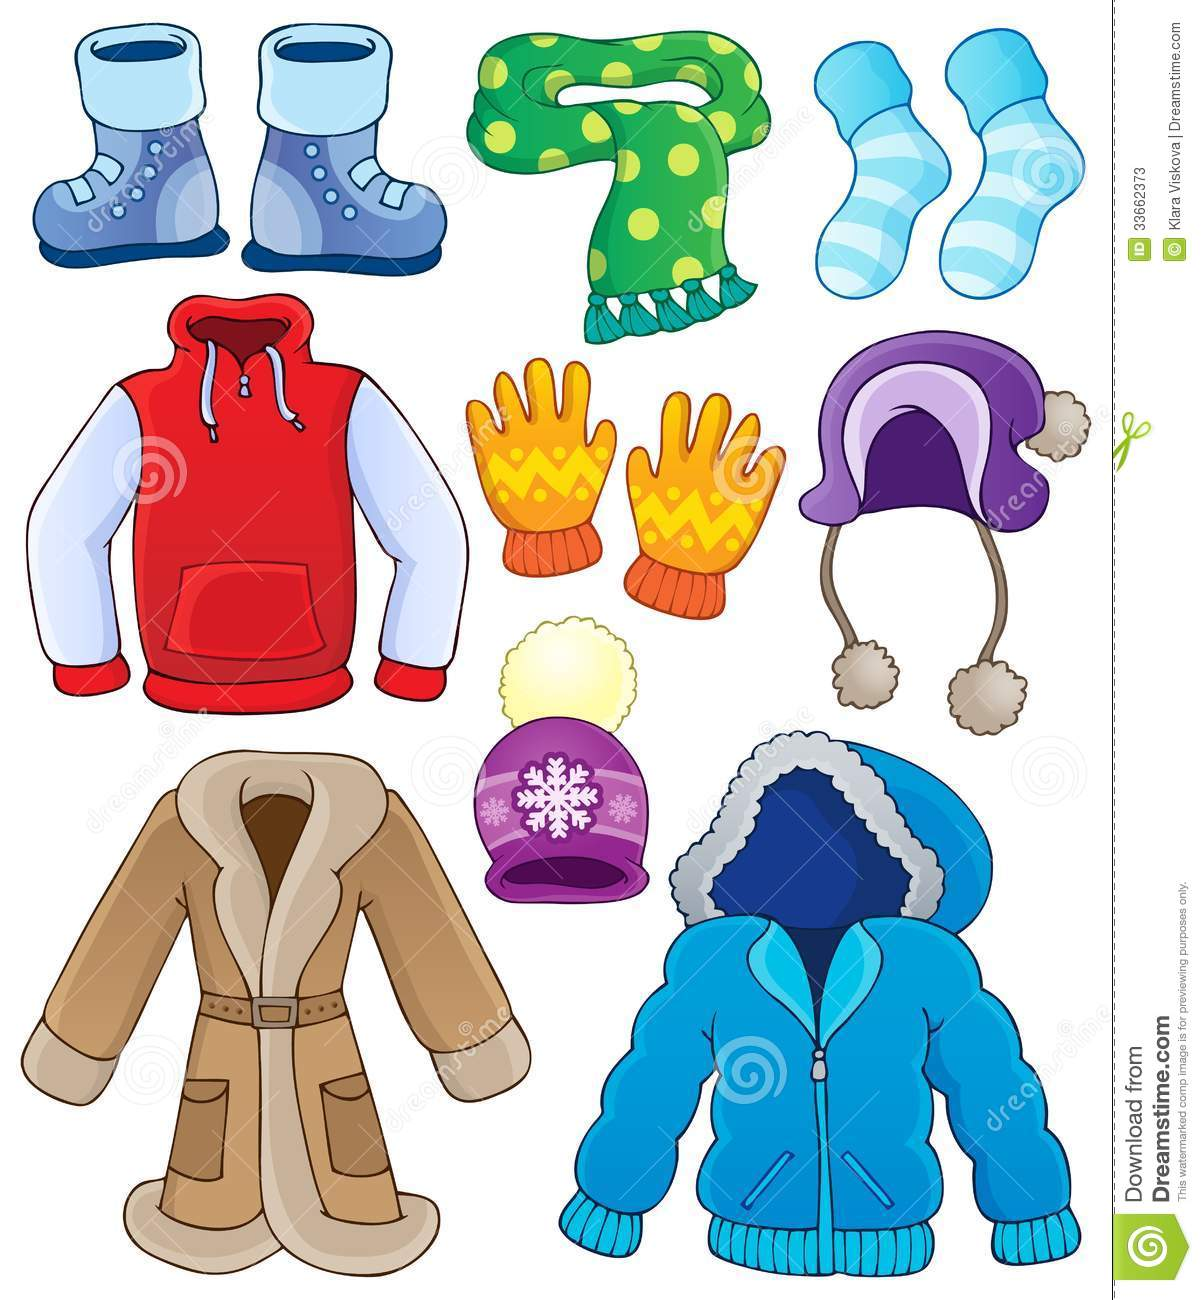 Parents - with the weather temperatures fluctuating please continue to send in the appropriate clothing for your student.